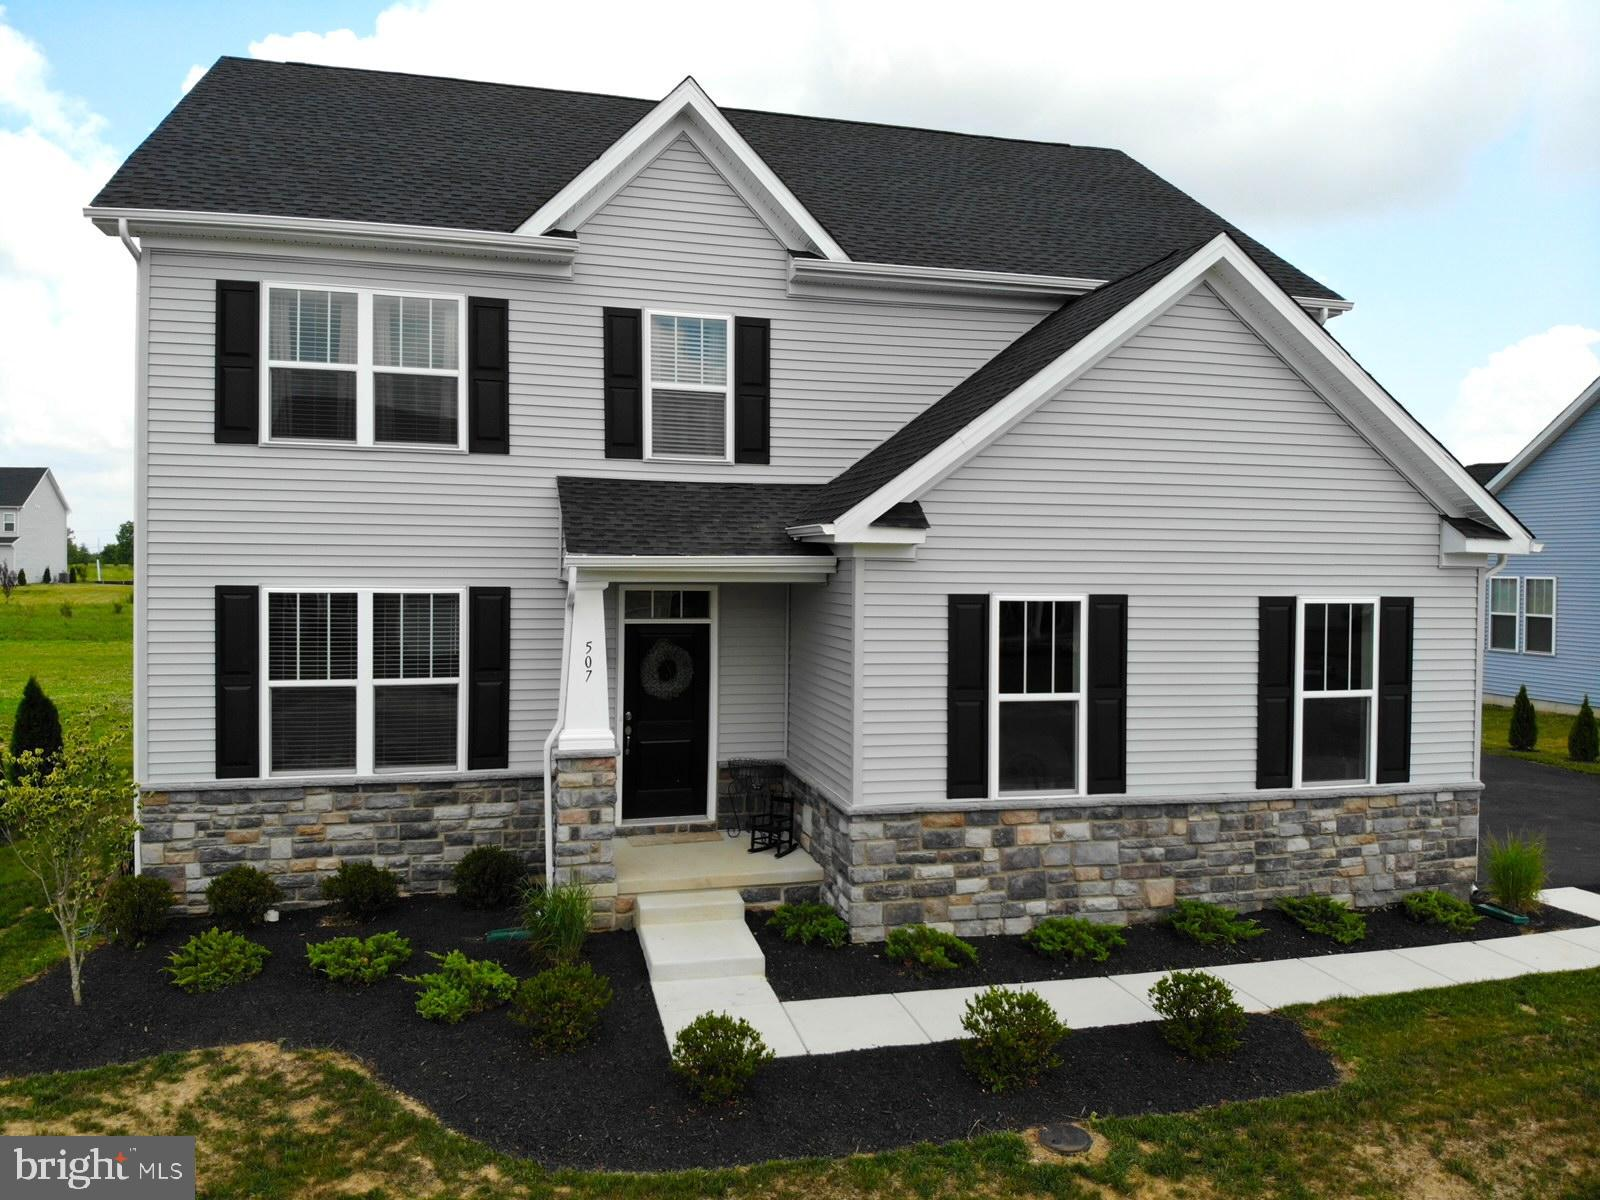 Looking for a brand new home, but don't want to wait for new construction?  This beautiful 5 bedroom, 3.5 bathroom home is only a few months old and ready for you to move in!  Take advantage of the builder~s home warranty and extensive manufacturer warranties on all of the NEW appliances- including the washer & dryer in conveniently located upstairs laundry room.  The home includes many energy-efficient features including 2x6 construction, energy efficient gas furnace, tilt-in insulated double pane windows, and more. With an open concept floor plan, upstairs loft and finished basement, there is plenty of space to live and entertain.   Upon entering the home, you will notice that the cool, dark-toned hardwood floors start in the foyer and run throughout the kitchen and into the formal dining room.  Off the foyer, is an additional living space that can be used as an office, playroom or formal living room.  The expansive kitchen boasts a large island with stainless steel appliances, sparkling granite countertops, a white subway tile backsplash and plenty of space for a breakfast nook.  It opens to a spacious living room and glass sliding door to the backyard.  Upstairs, lies a spacious master bedroom with ensuite bathroom and both his and hers walk-in closets. You will also find an open loft space for lounging, full hall bathroom with tub-shower combo and 3 additional bedrooms, each with it's own walk-in closet.  The basement level is mostly finished with a large bonus room, full bathroom and bedroom with large egress window for light and safety.  Additionally, the basement contains an unfinished space for appliances and ample storage. Take advantage of Middletown~s awesome location- one hour to the beach, 45 minutes to the Philadelphia airport and only 20 minutes to tax-free shopping at Christiana!  With all these fine details, this home is sure to sell quickly.  Schedule your private showing today!